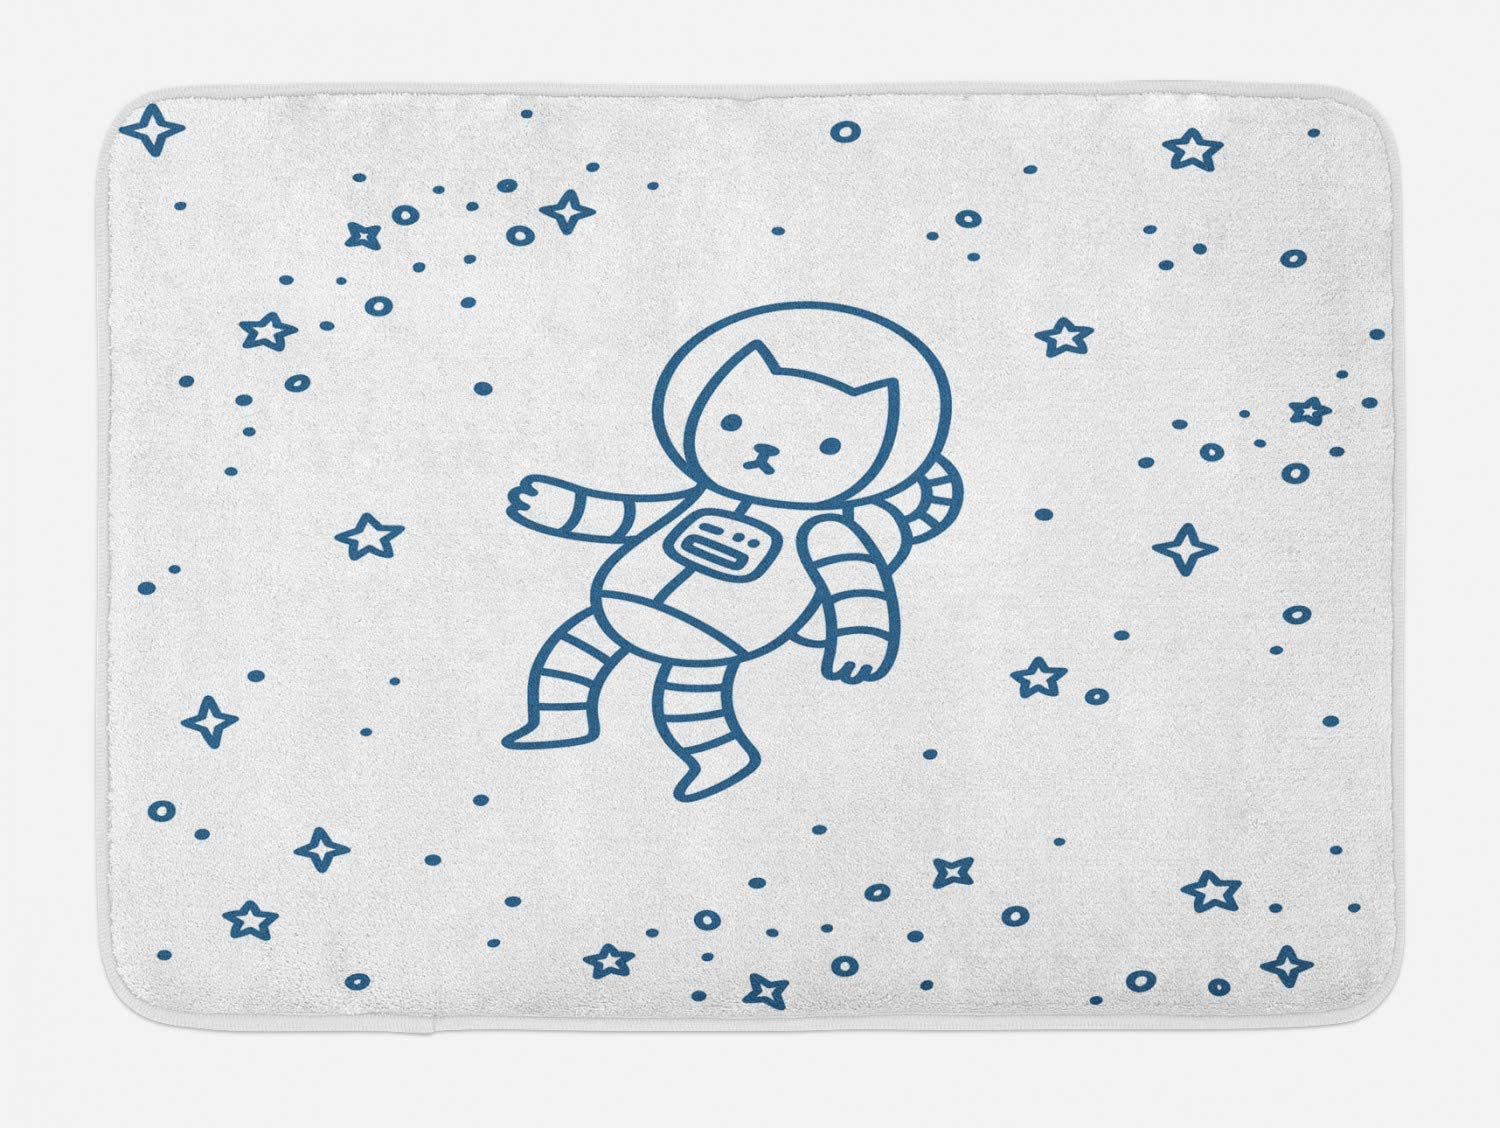 Ambesonne Cat Bath Mat, Cartoon Astronaut Pioneer Cat Flying in Outer Space Doodle Style Constellation, Plush Bathroom Decor Mat with Non Slip Backing, 29.5